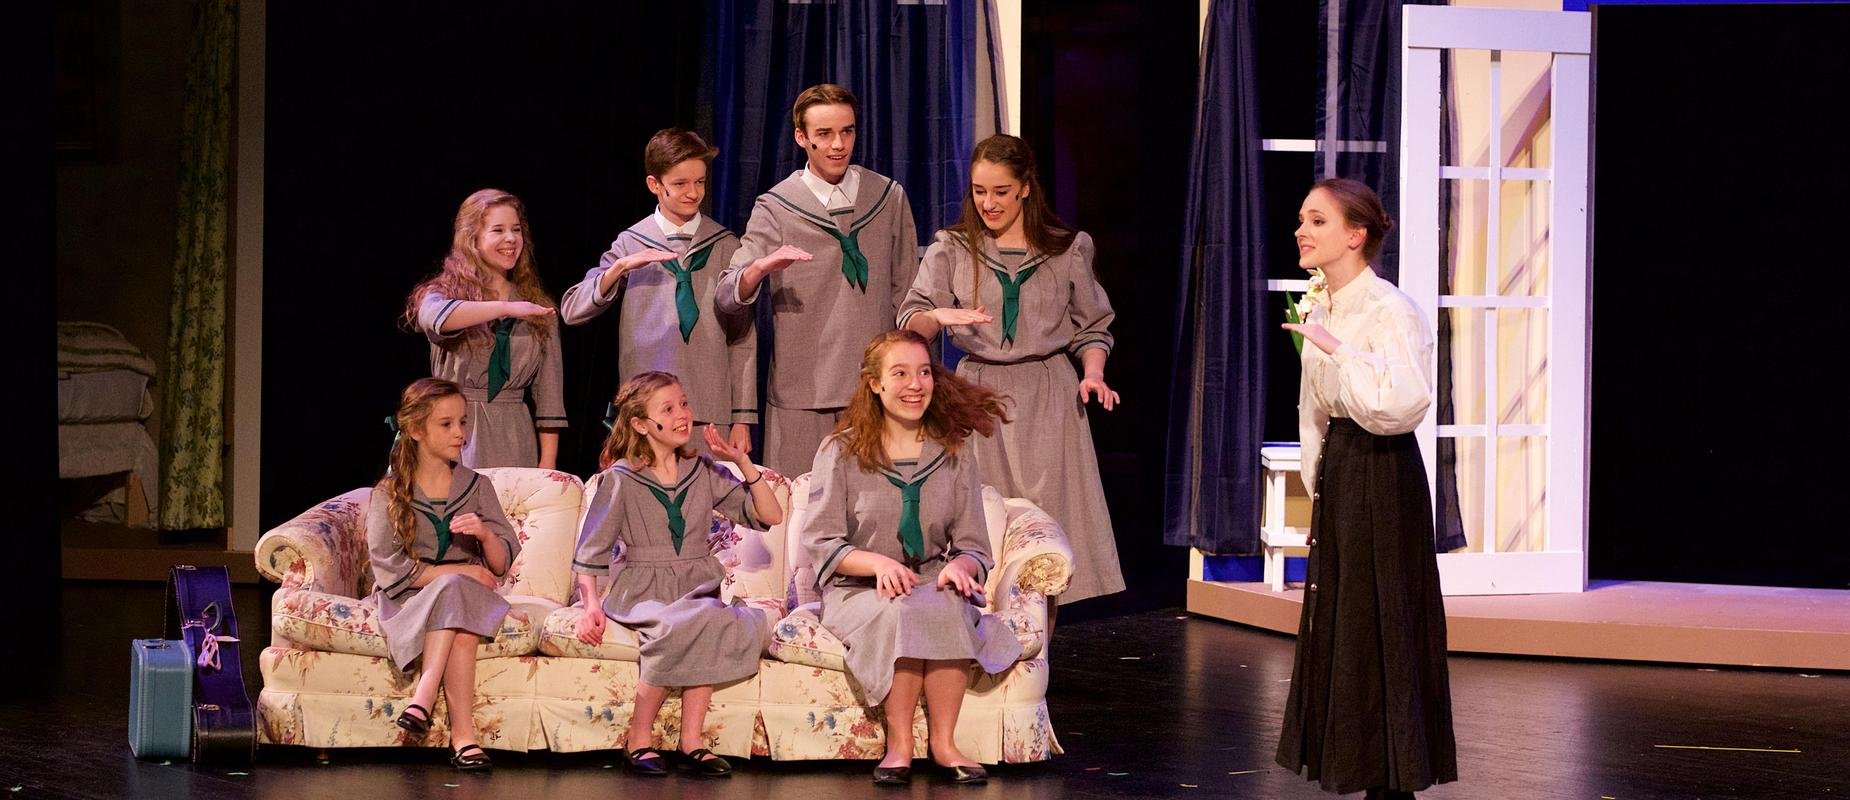 The Sound of Music children sing on couch in musical stage